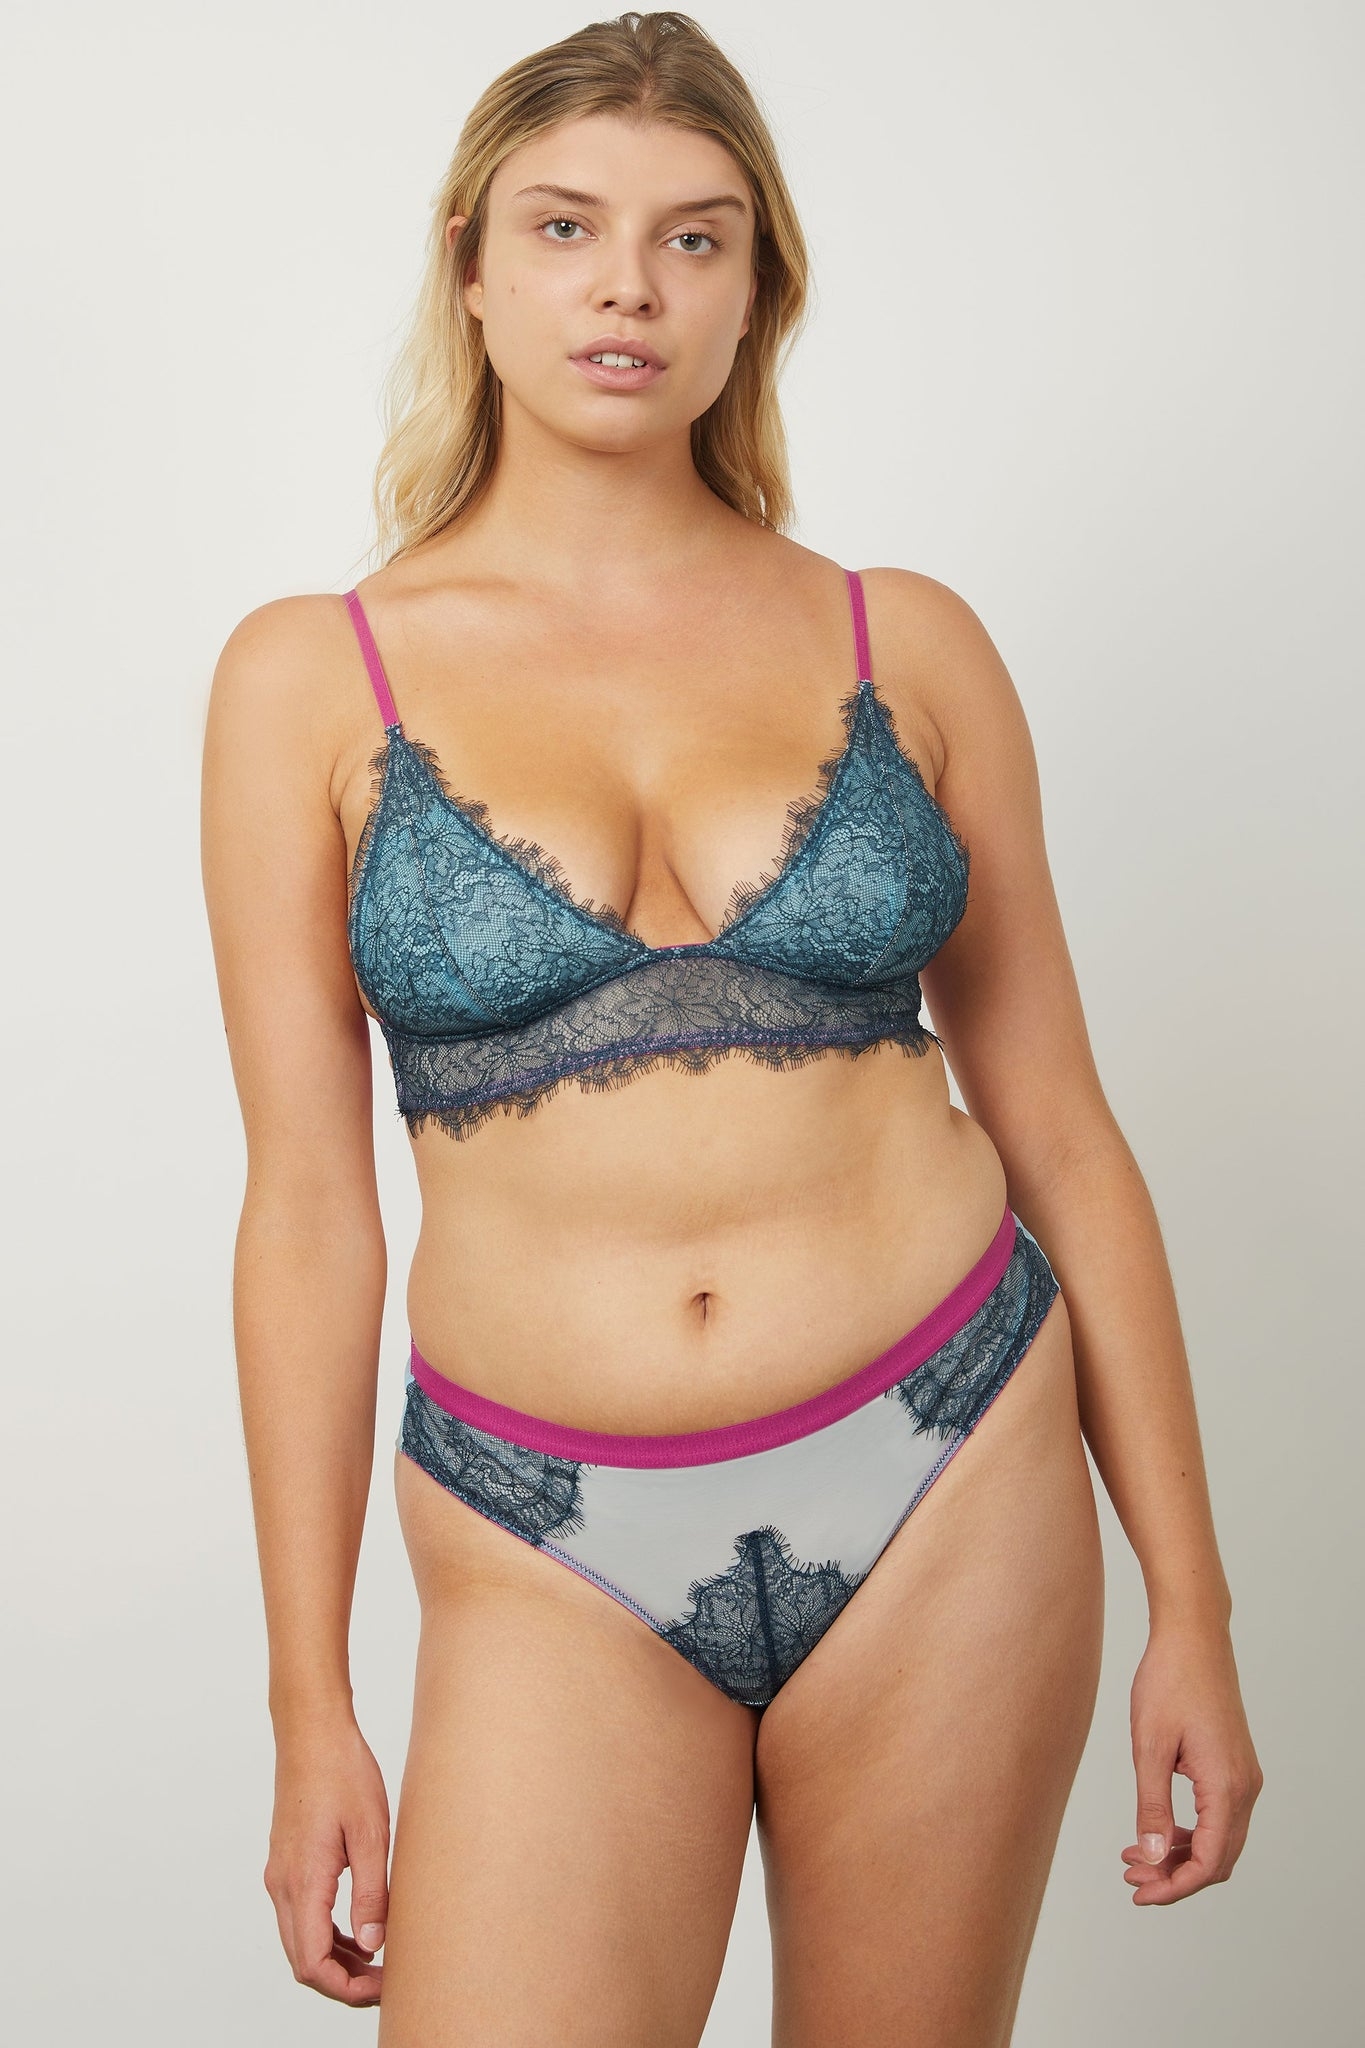 Maria Padded Triangle Bra - Dora Larsen | Colourful Lingerie